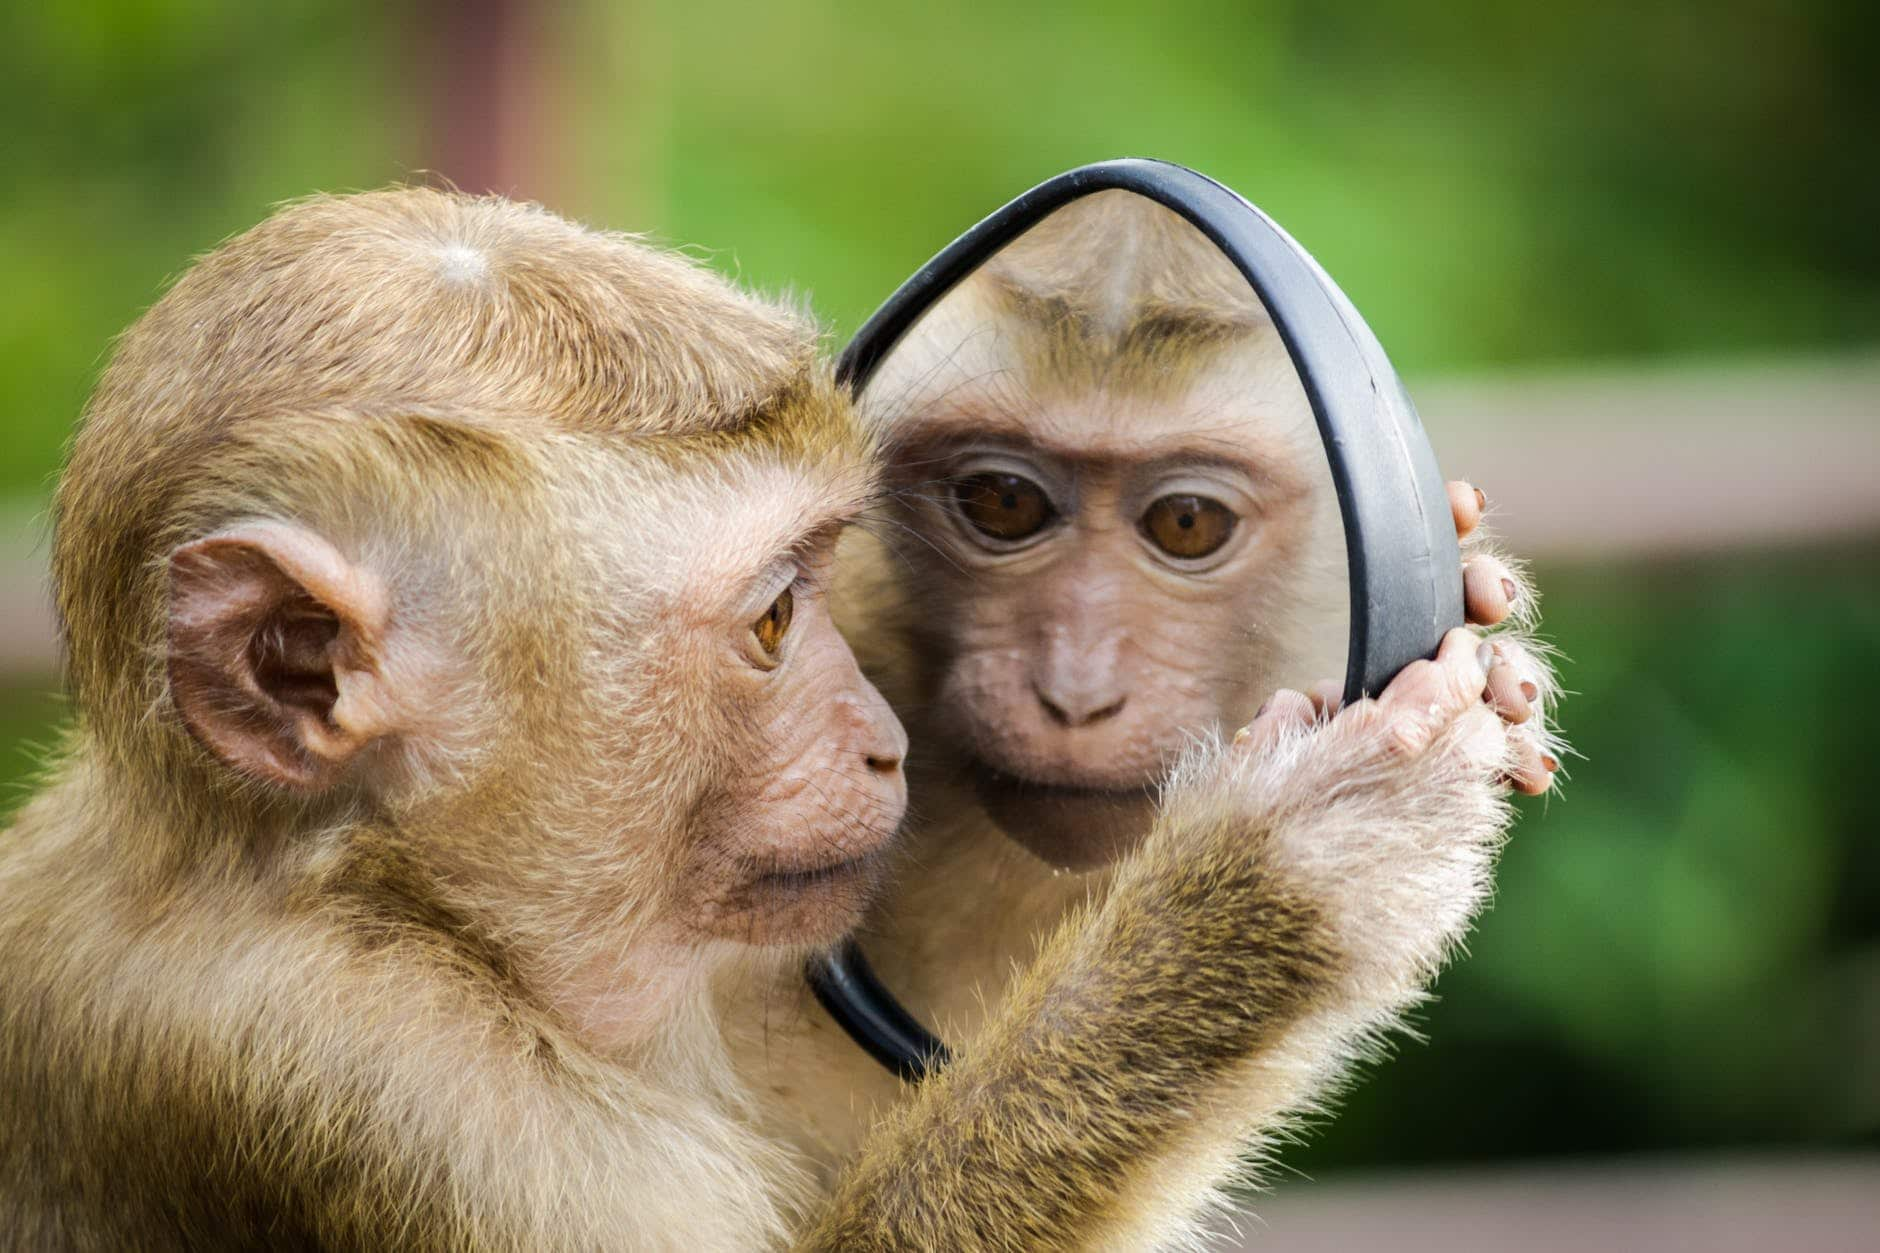 Why Didn't Every Primate Evolve into Human Beings?